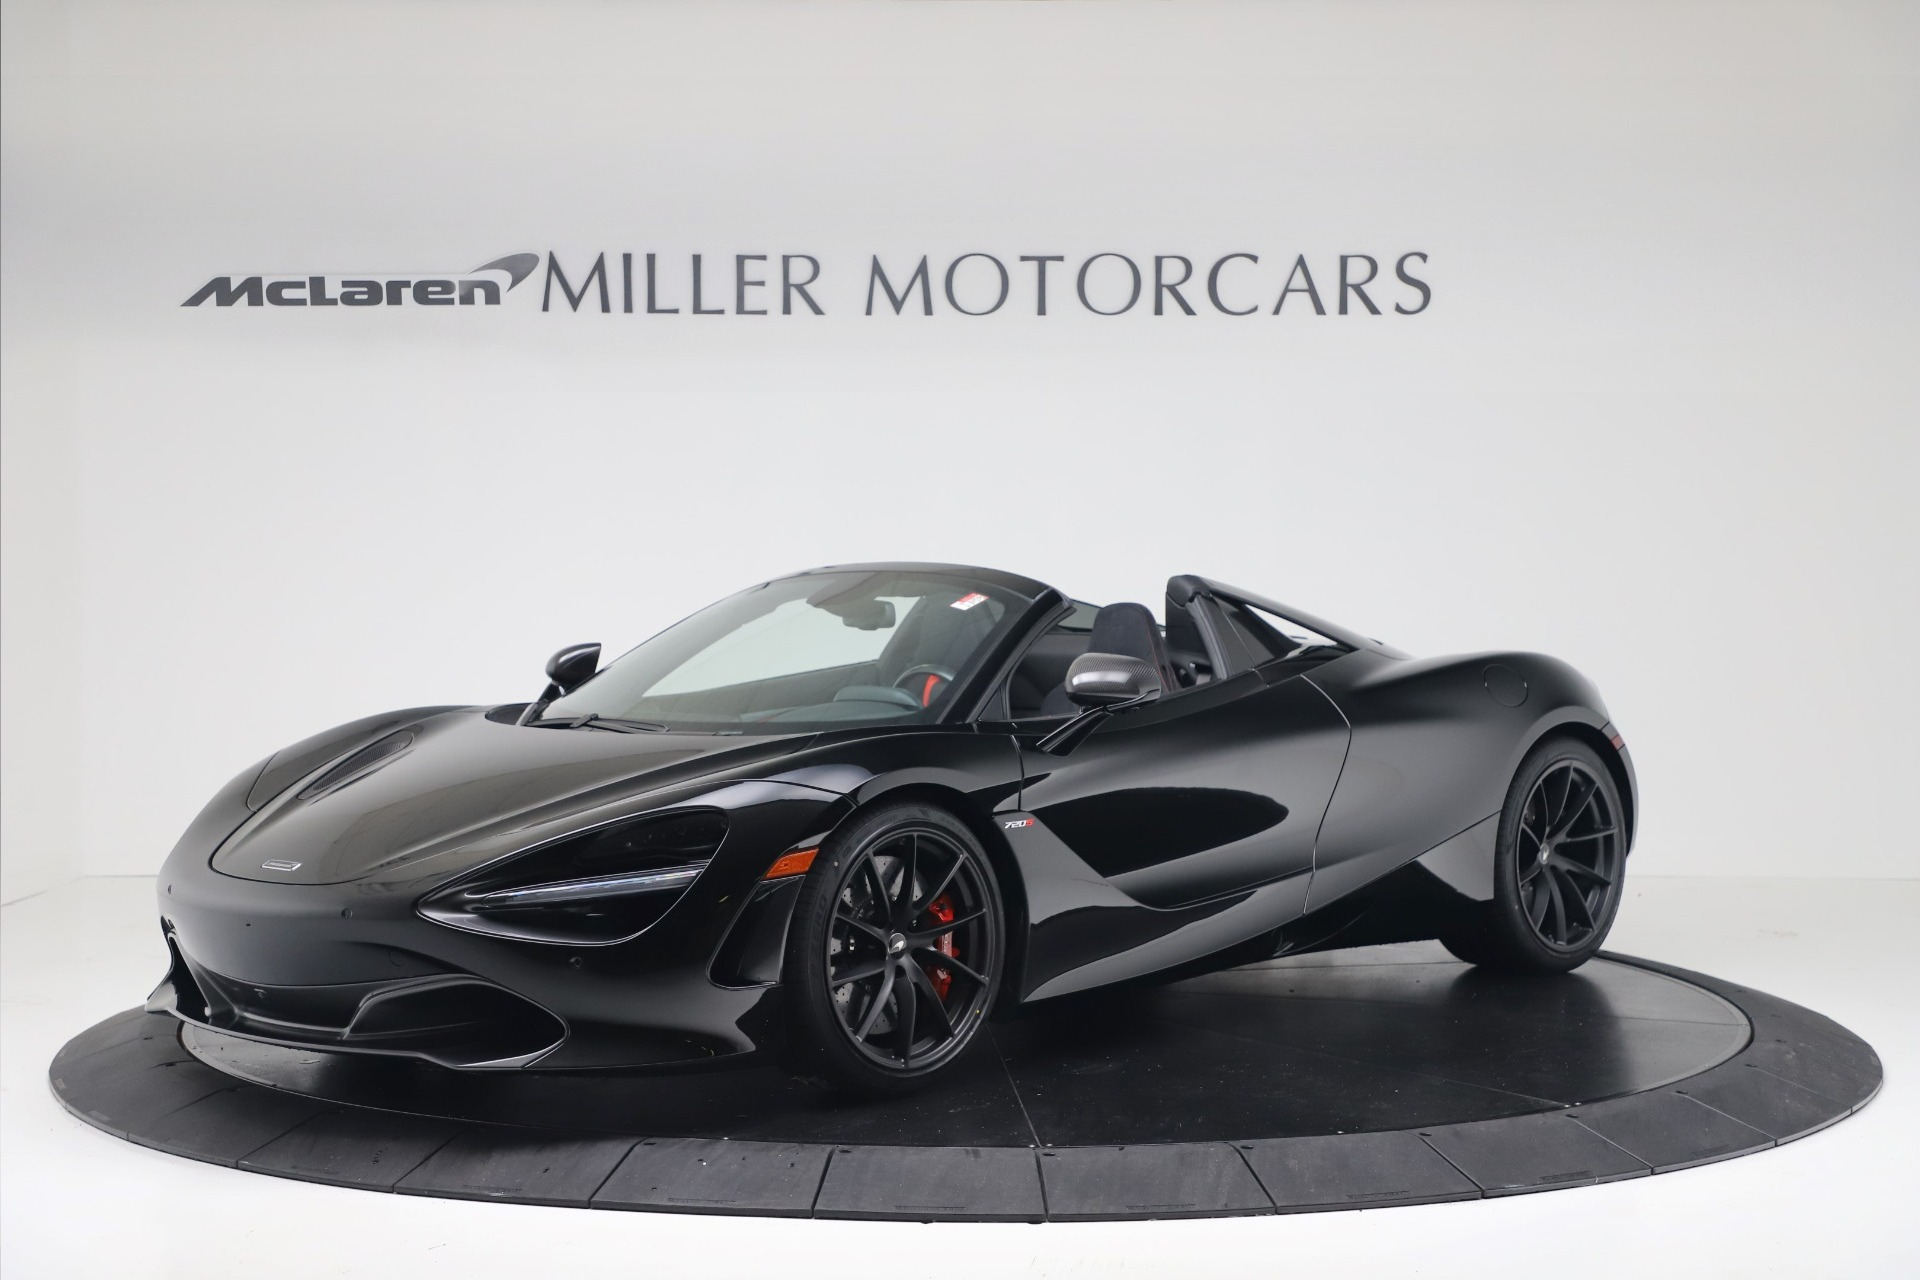 Used 2020 McLaren 720S Spider for sale $334,900 at Bentley Greenwich in Greenwich CT 06830 1